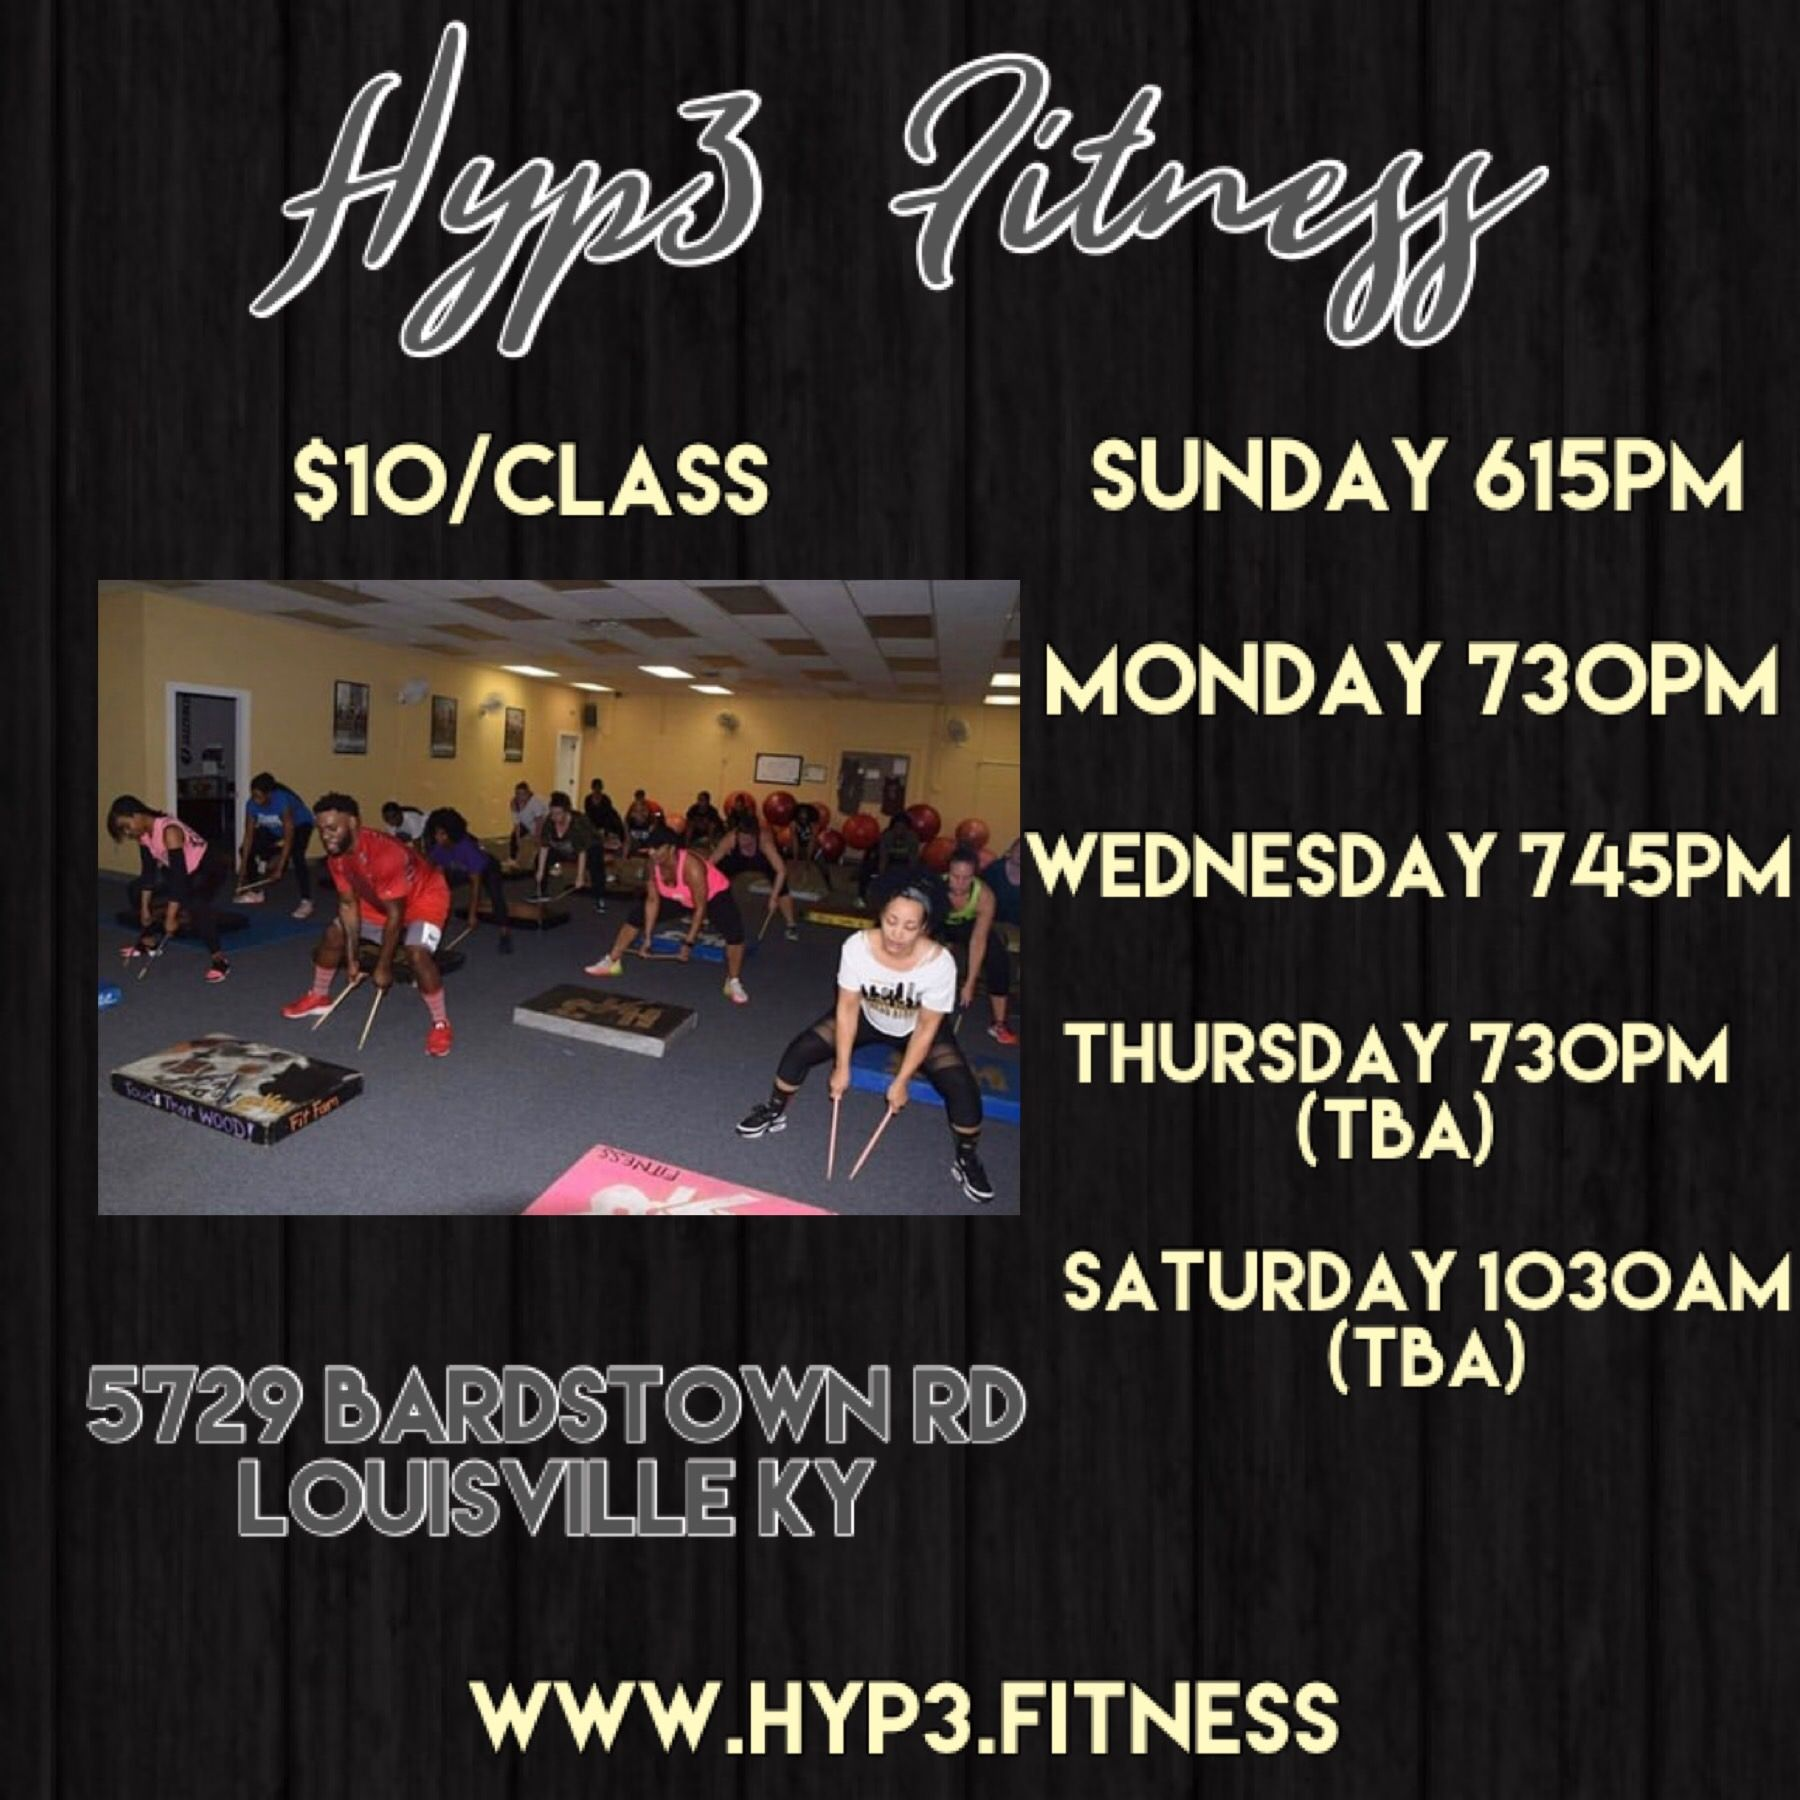 Pin By Chatoya S On Healthy Habits Healthy Habits Bardstown Louisville Ky